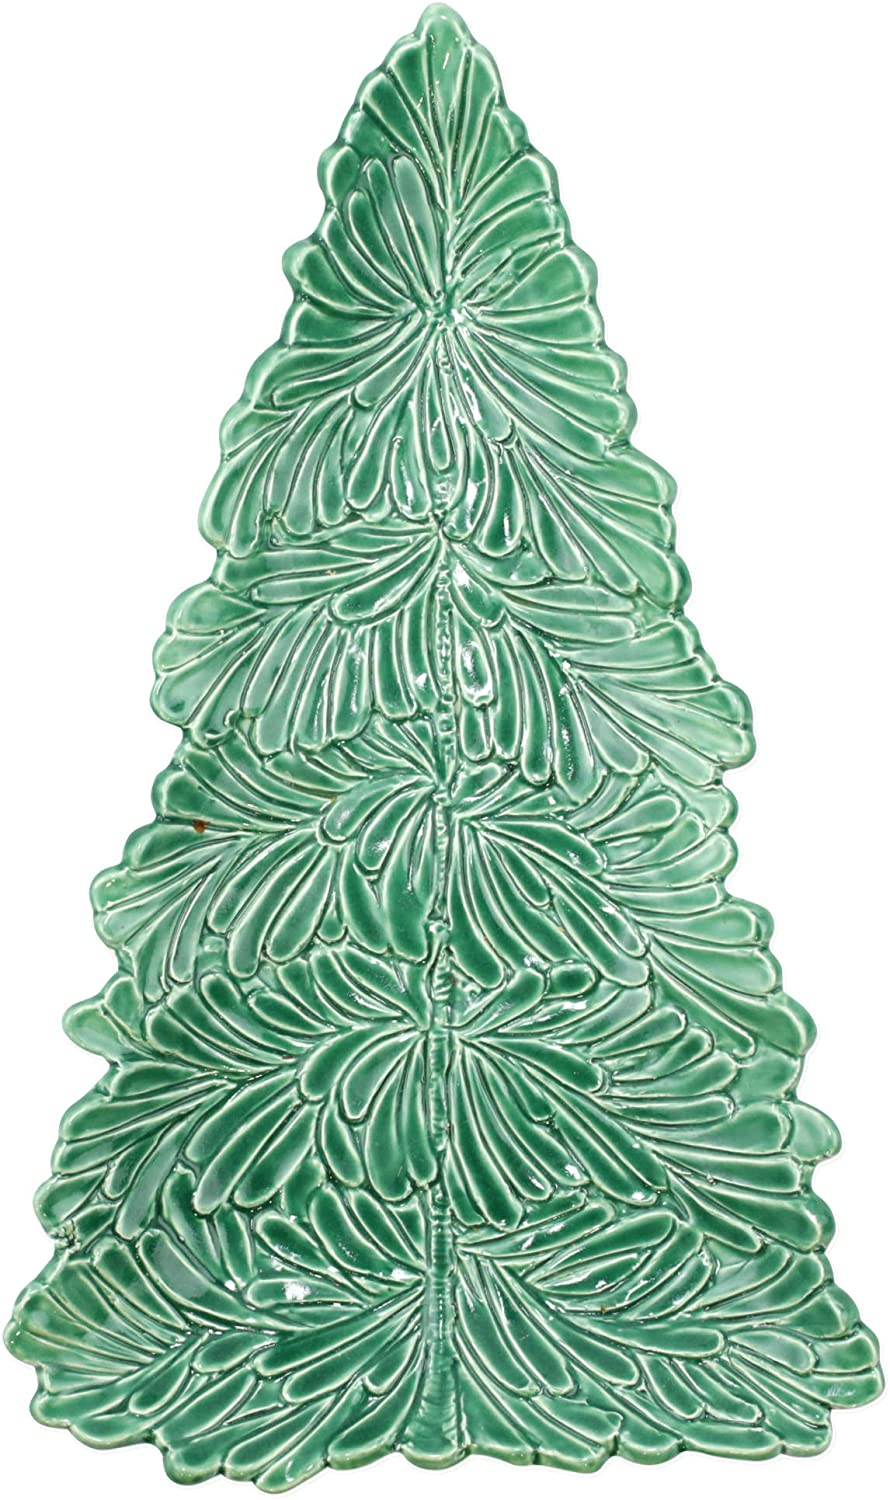 Vietri Lastra Holiday Figural Tree Small Platter - Holiday Tableware, Accents, Gifts and Decor